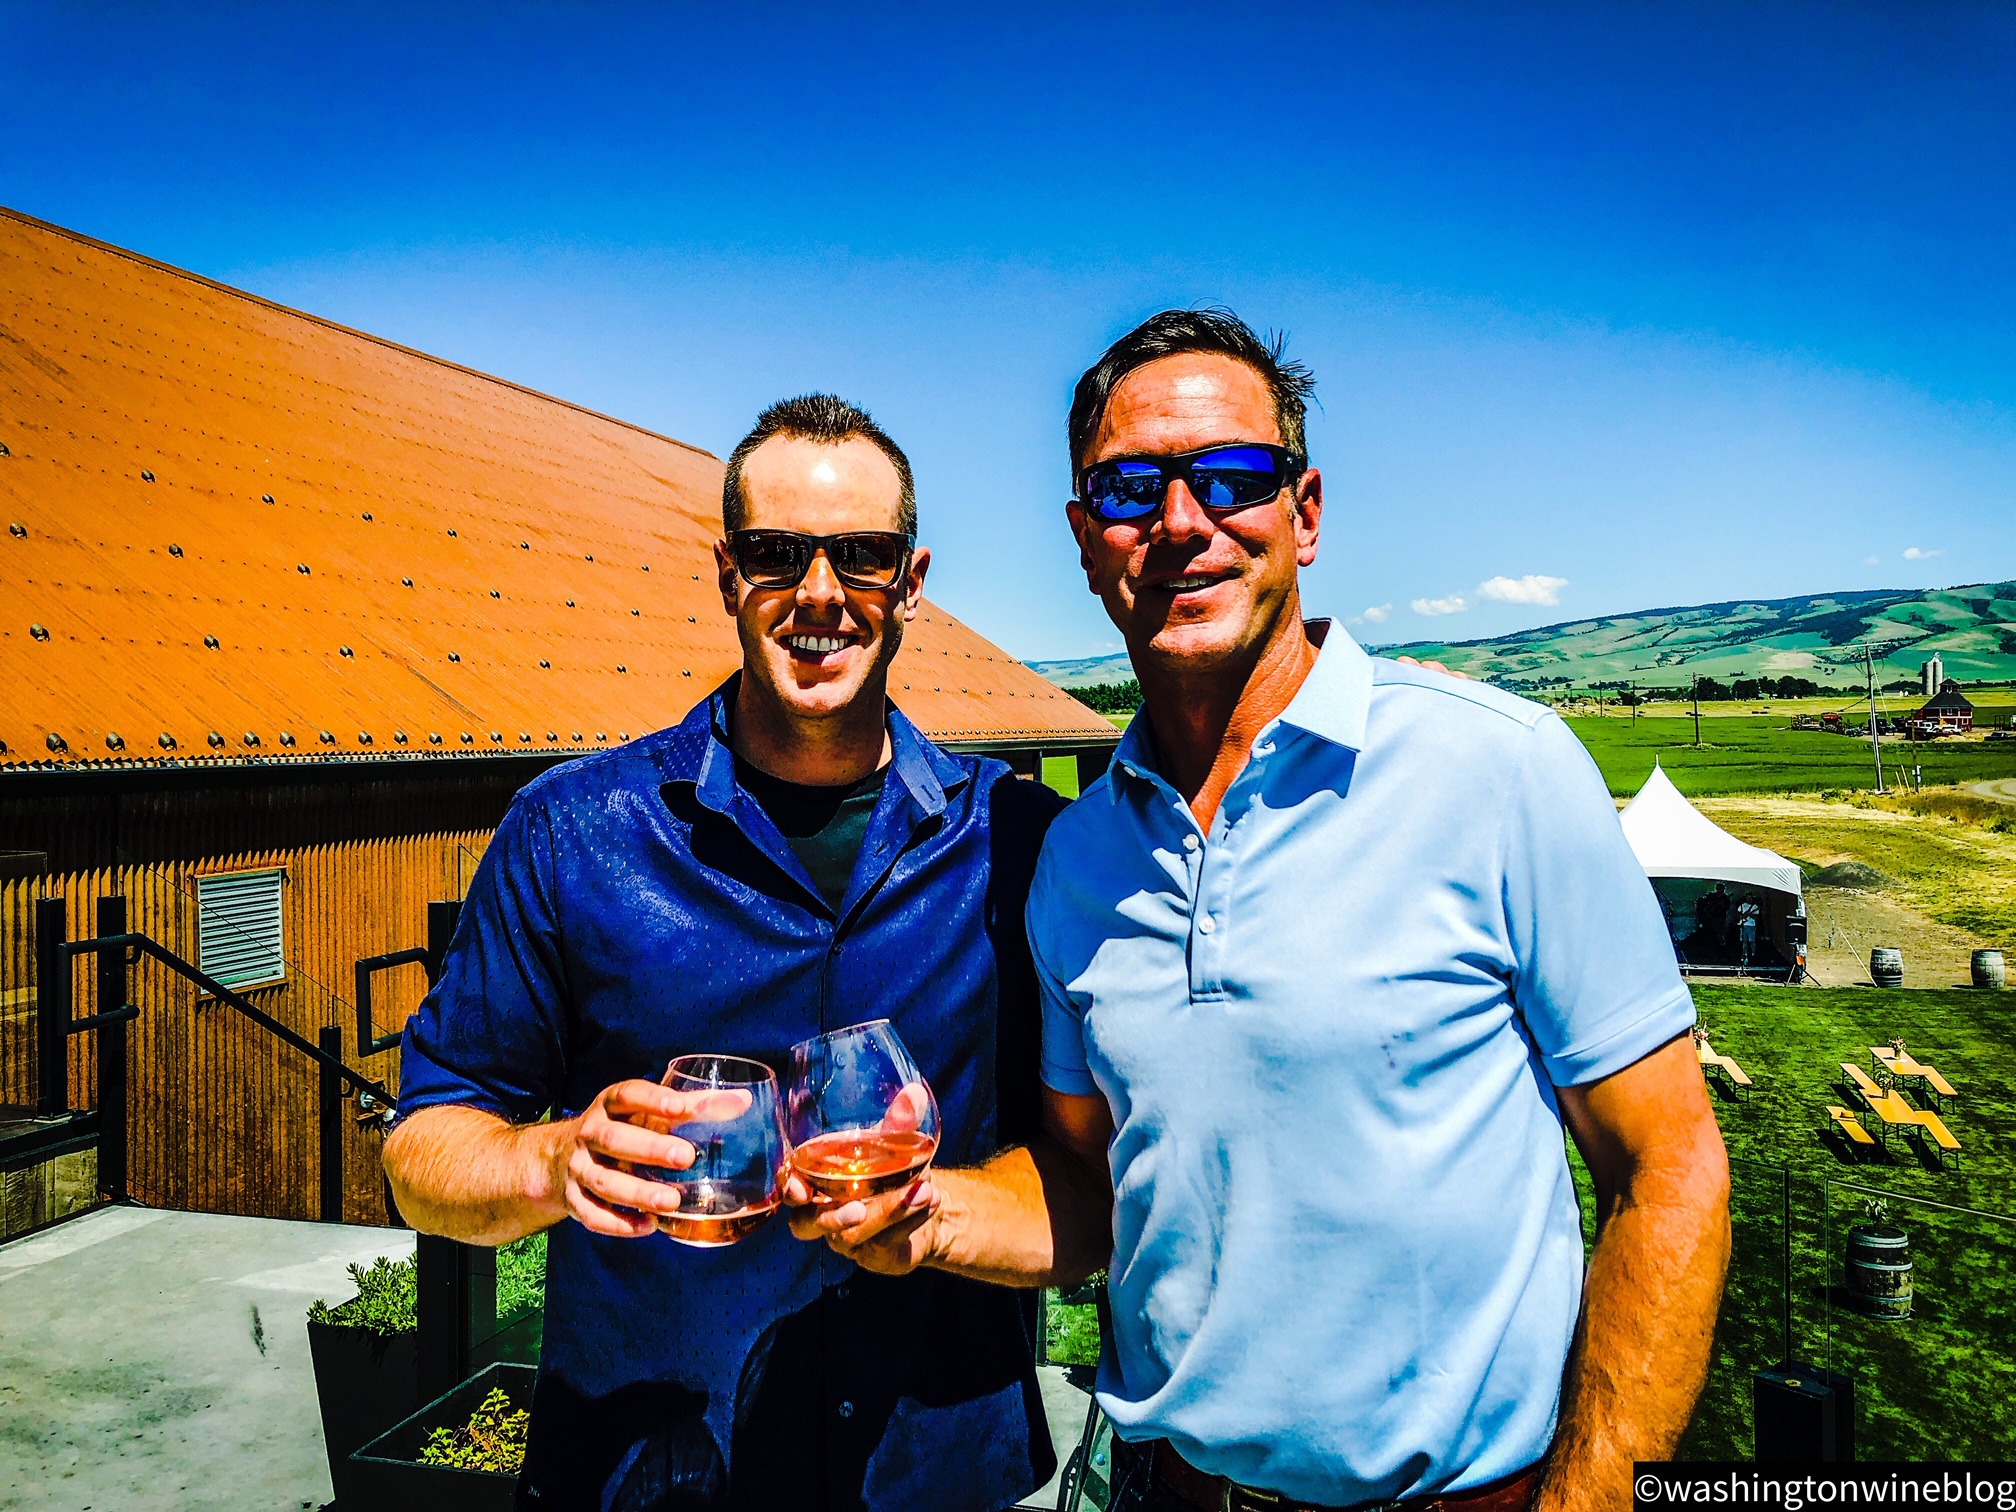 Here I am pictured with Doubleback owner, Drew Bledsoe, from his beautiful rooftop setting at Doubleback winery.